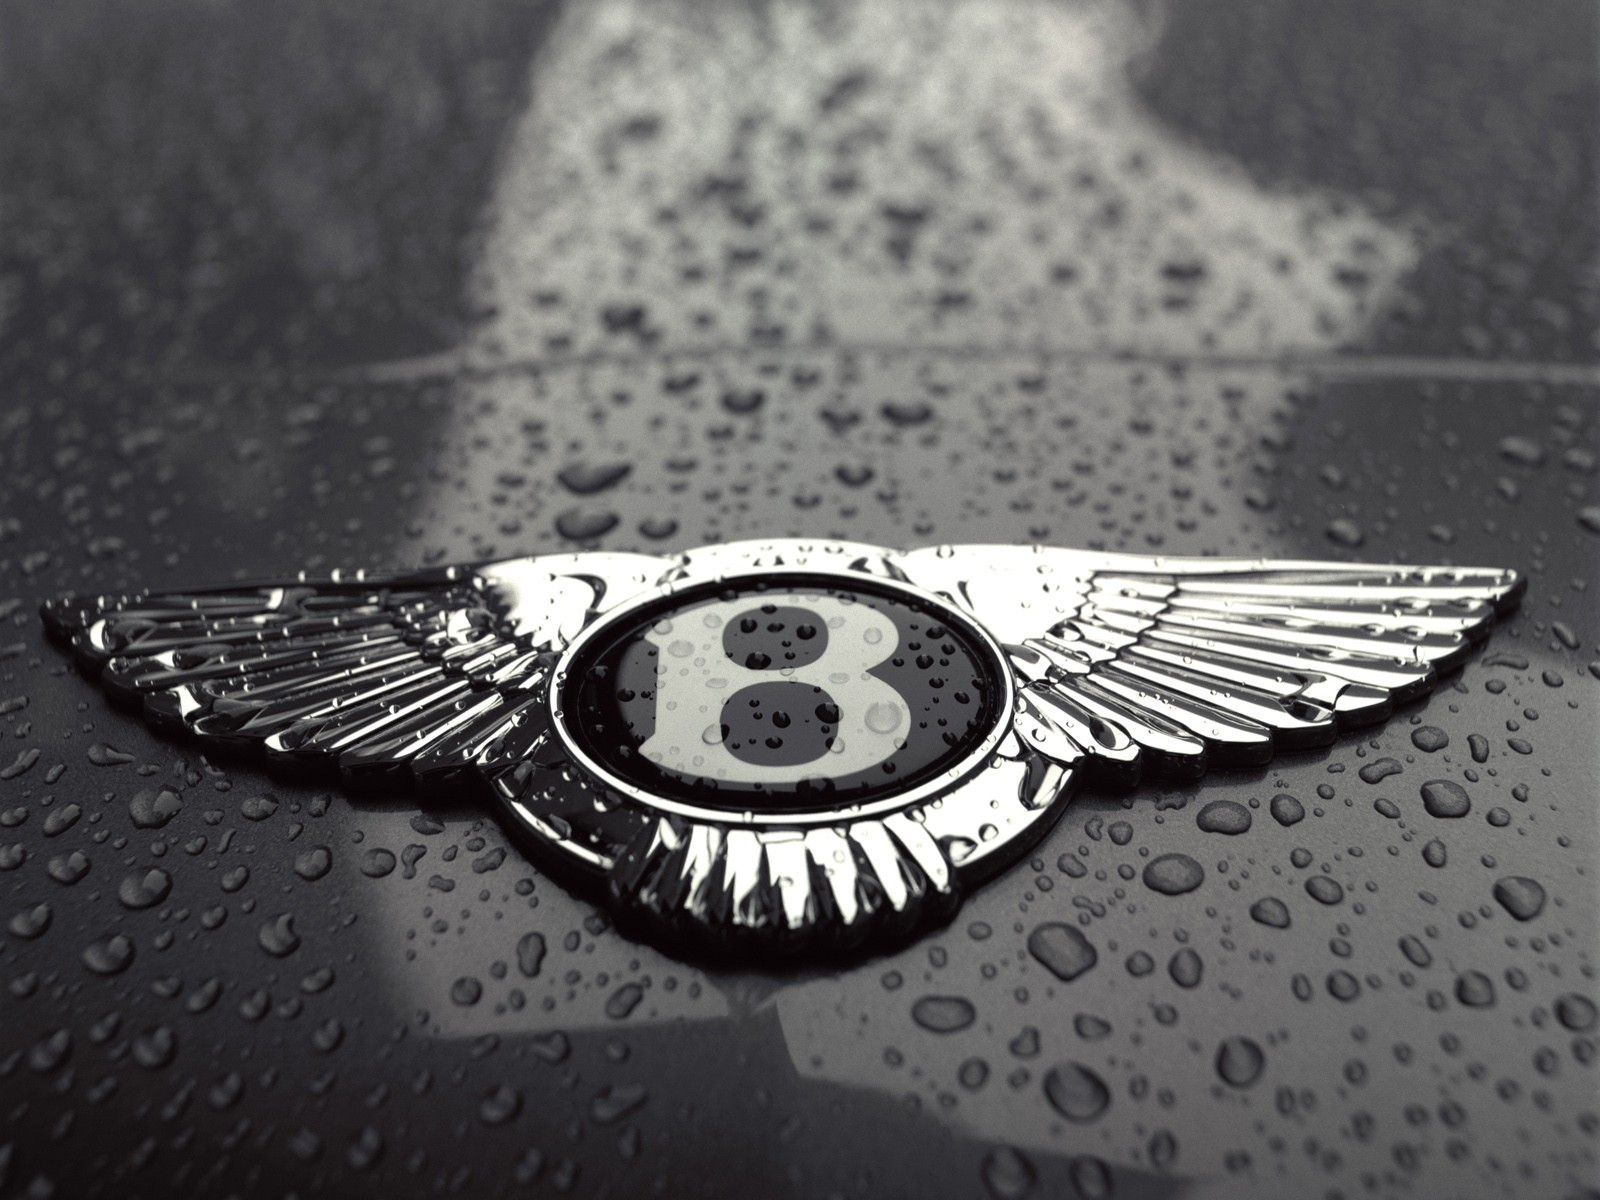 Bentley Cars pics